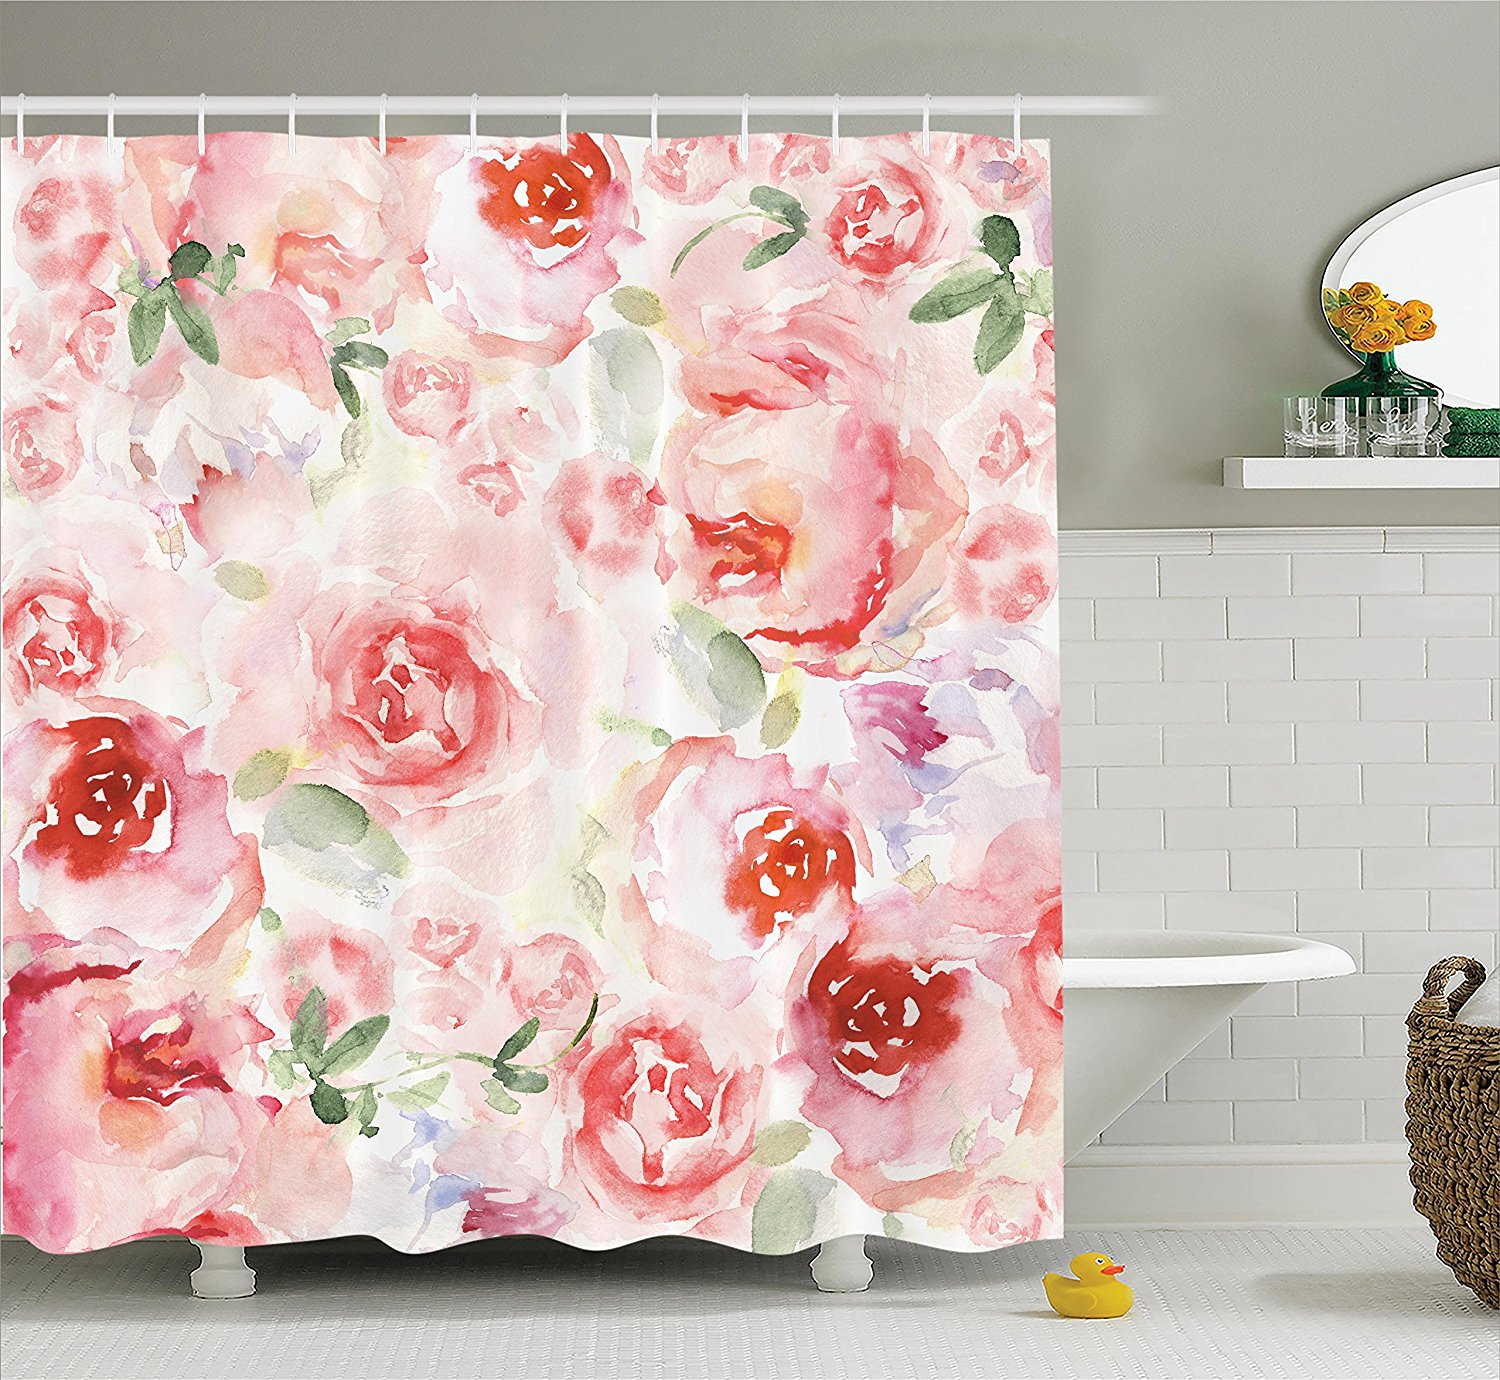 Romantic shower curtain - Soft Colored Pale Faded Mix Of Roses Vintage Style Romantic Dream Painting Polyester Fabric Bathroom Shower Curtain